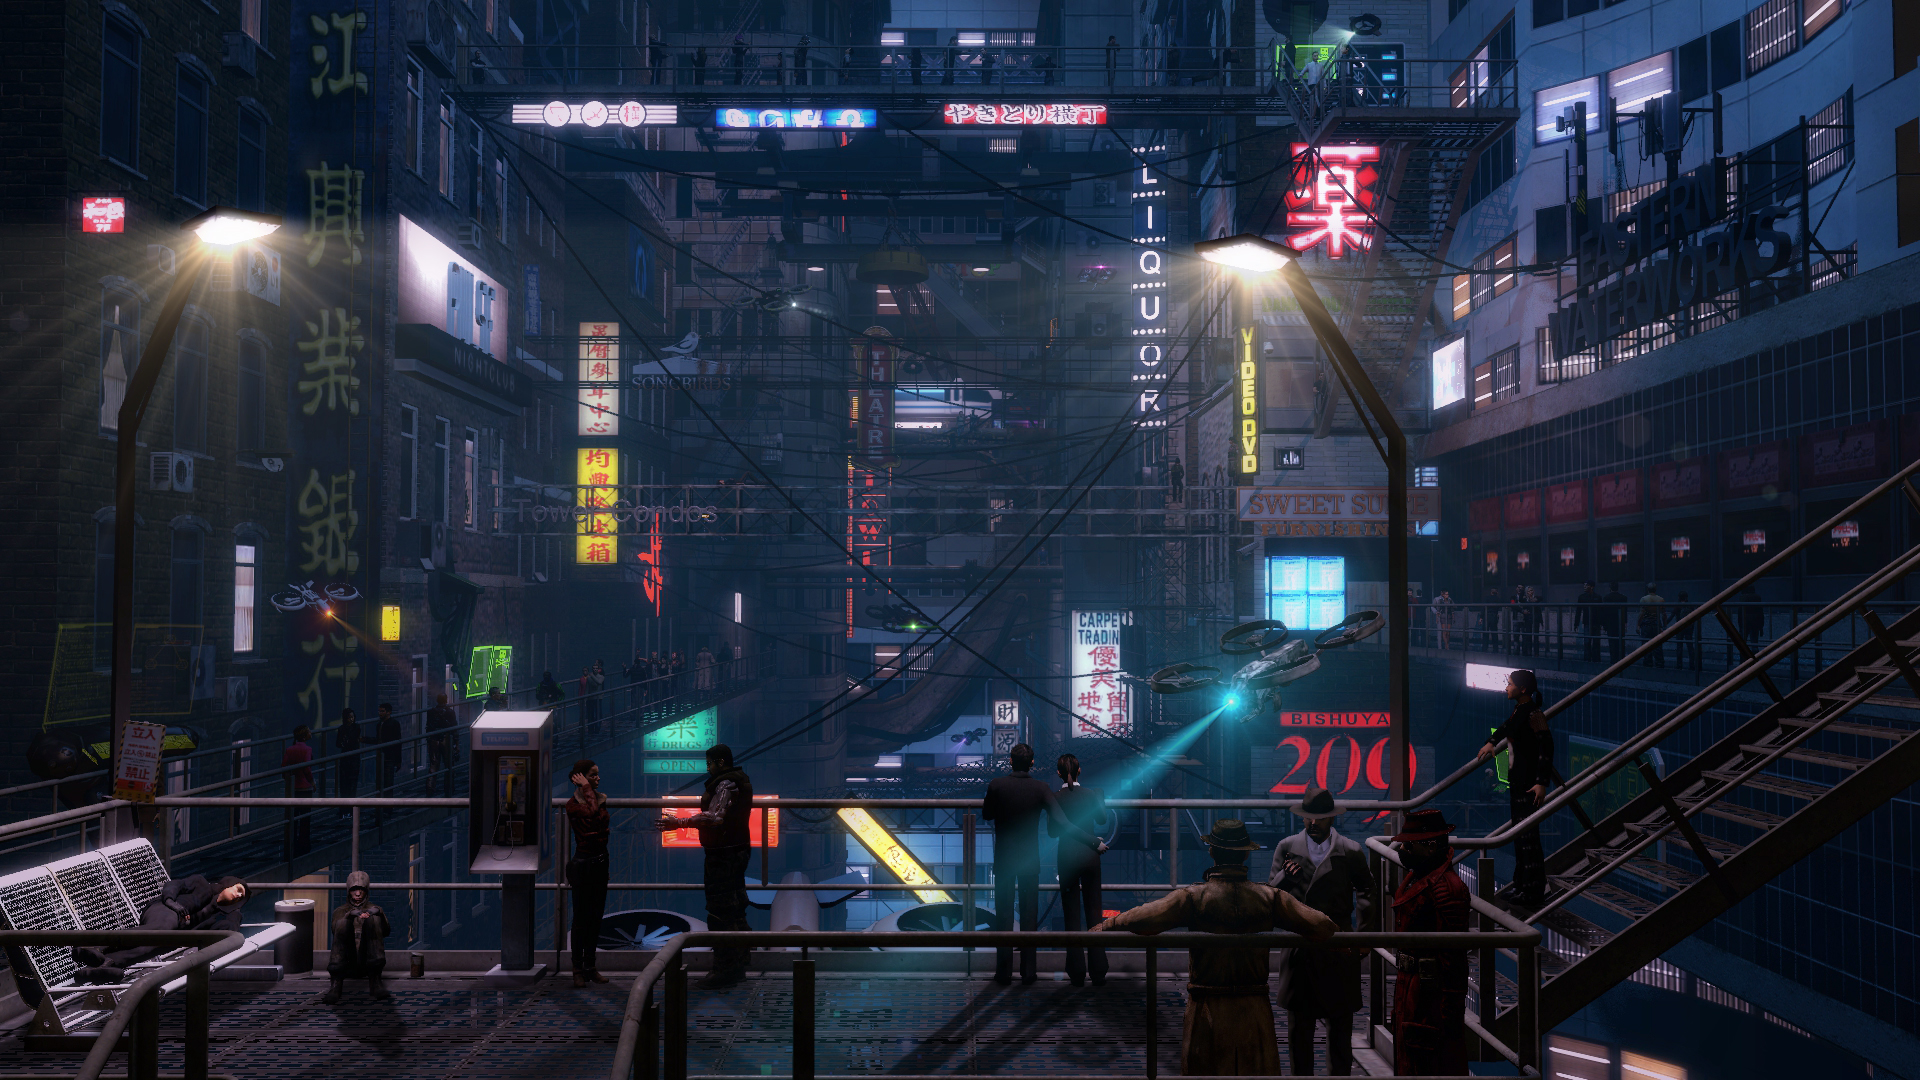 Ghost in the shell wallpapers 1